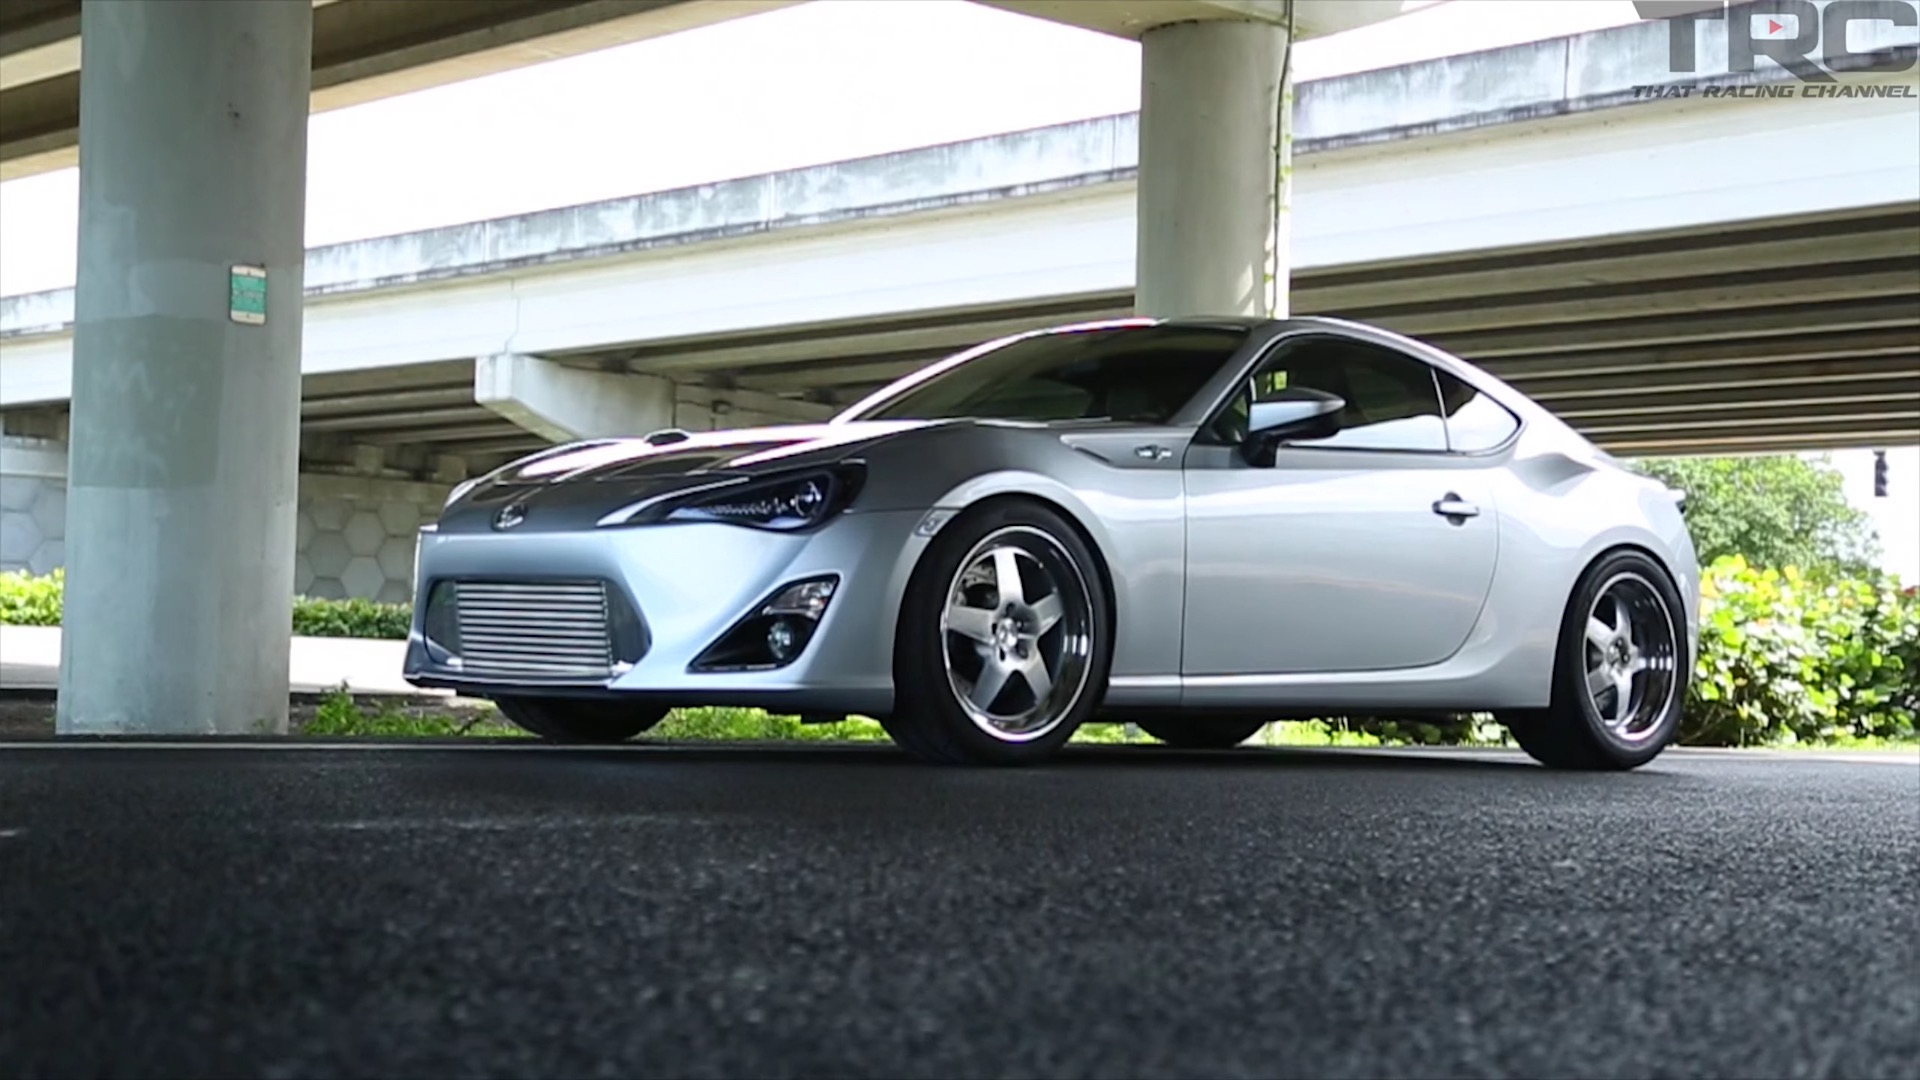 Scion Frs Turbo >> 1,210 HP Scion FRS With Toyota 2JZ Engine | DamnedWerk